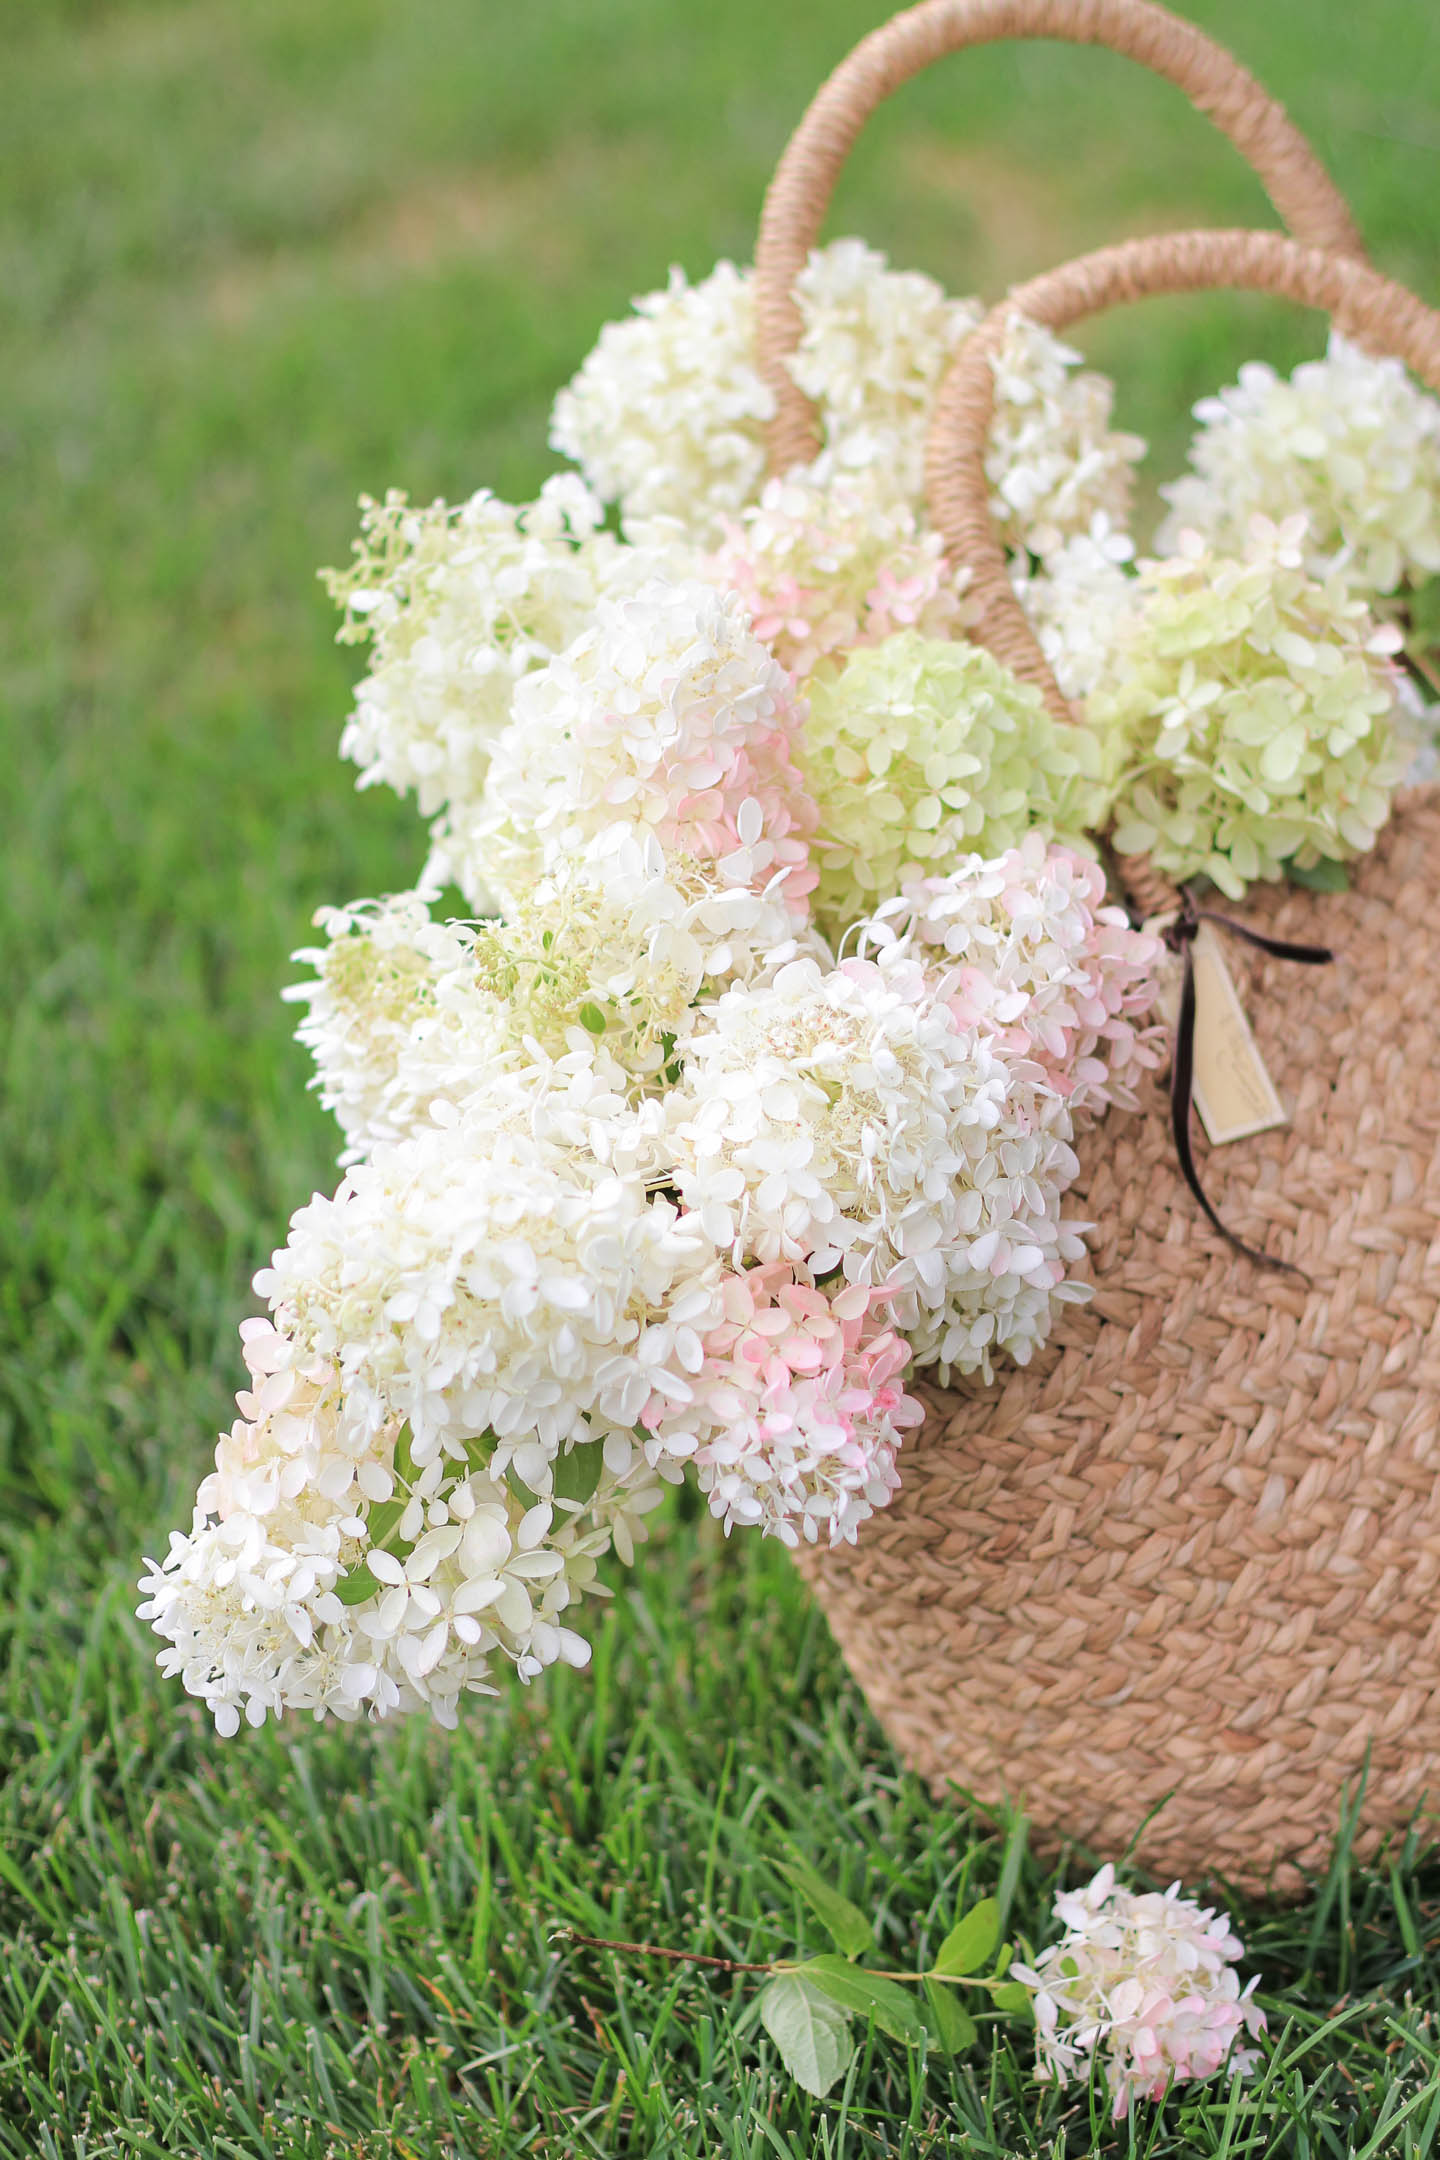 White, pink and green hydrangeas in  a bag.